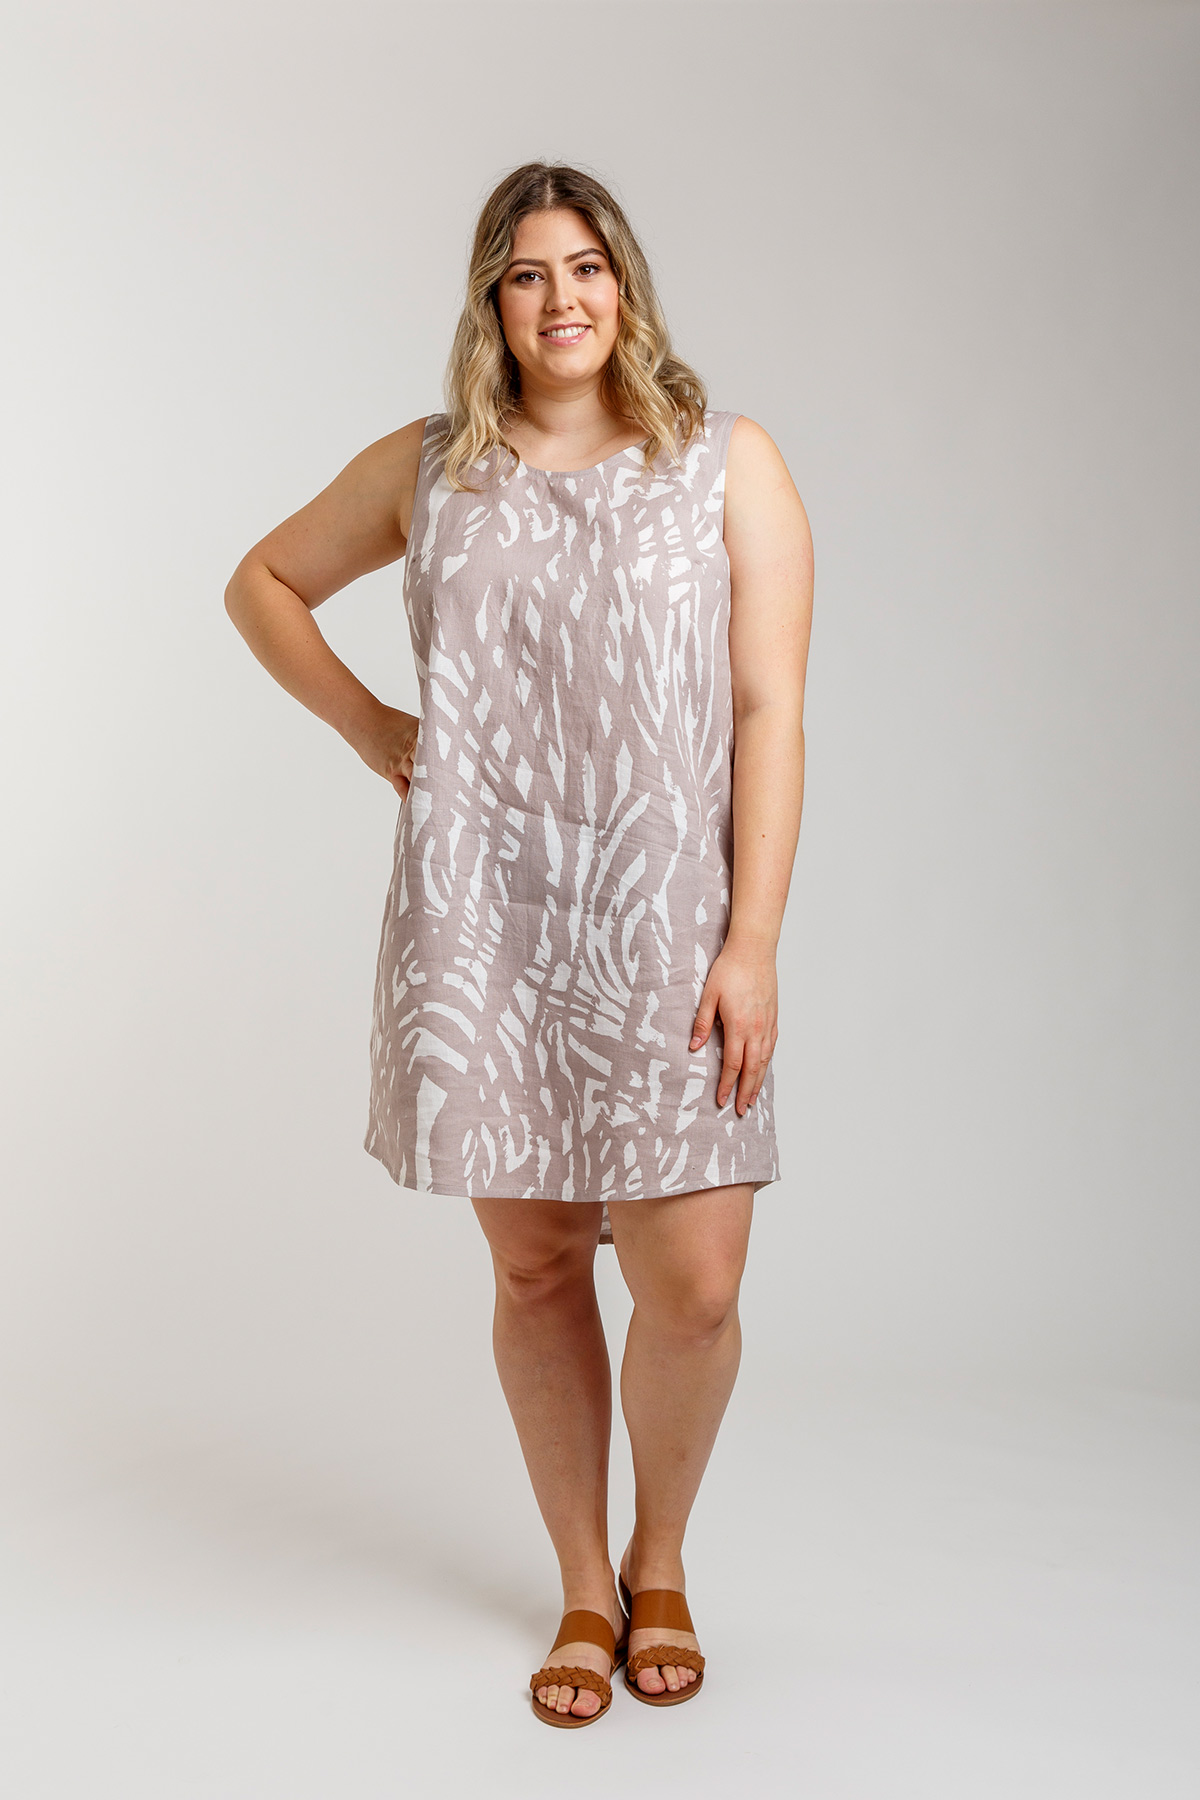 Introducing Eucalypt Curve woven tank and dress by Megan Nielsen Patterns // sizes 14-30